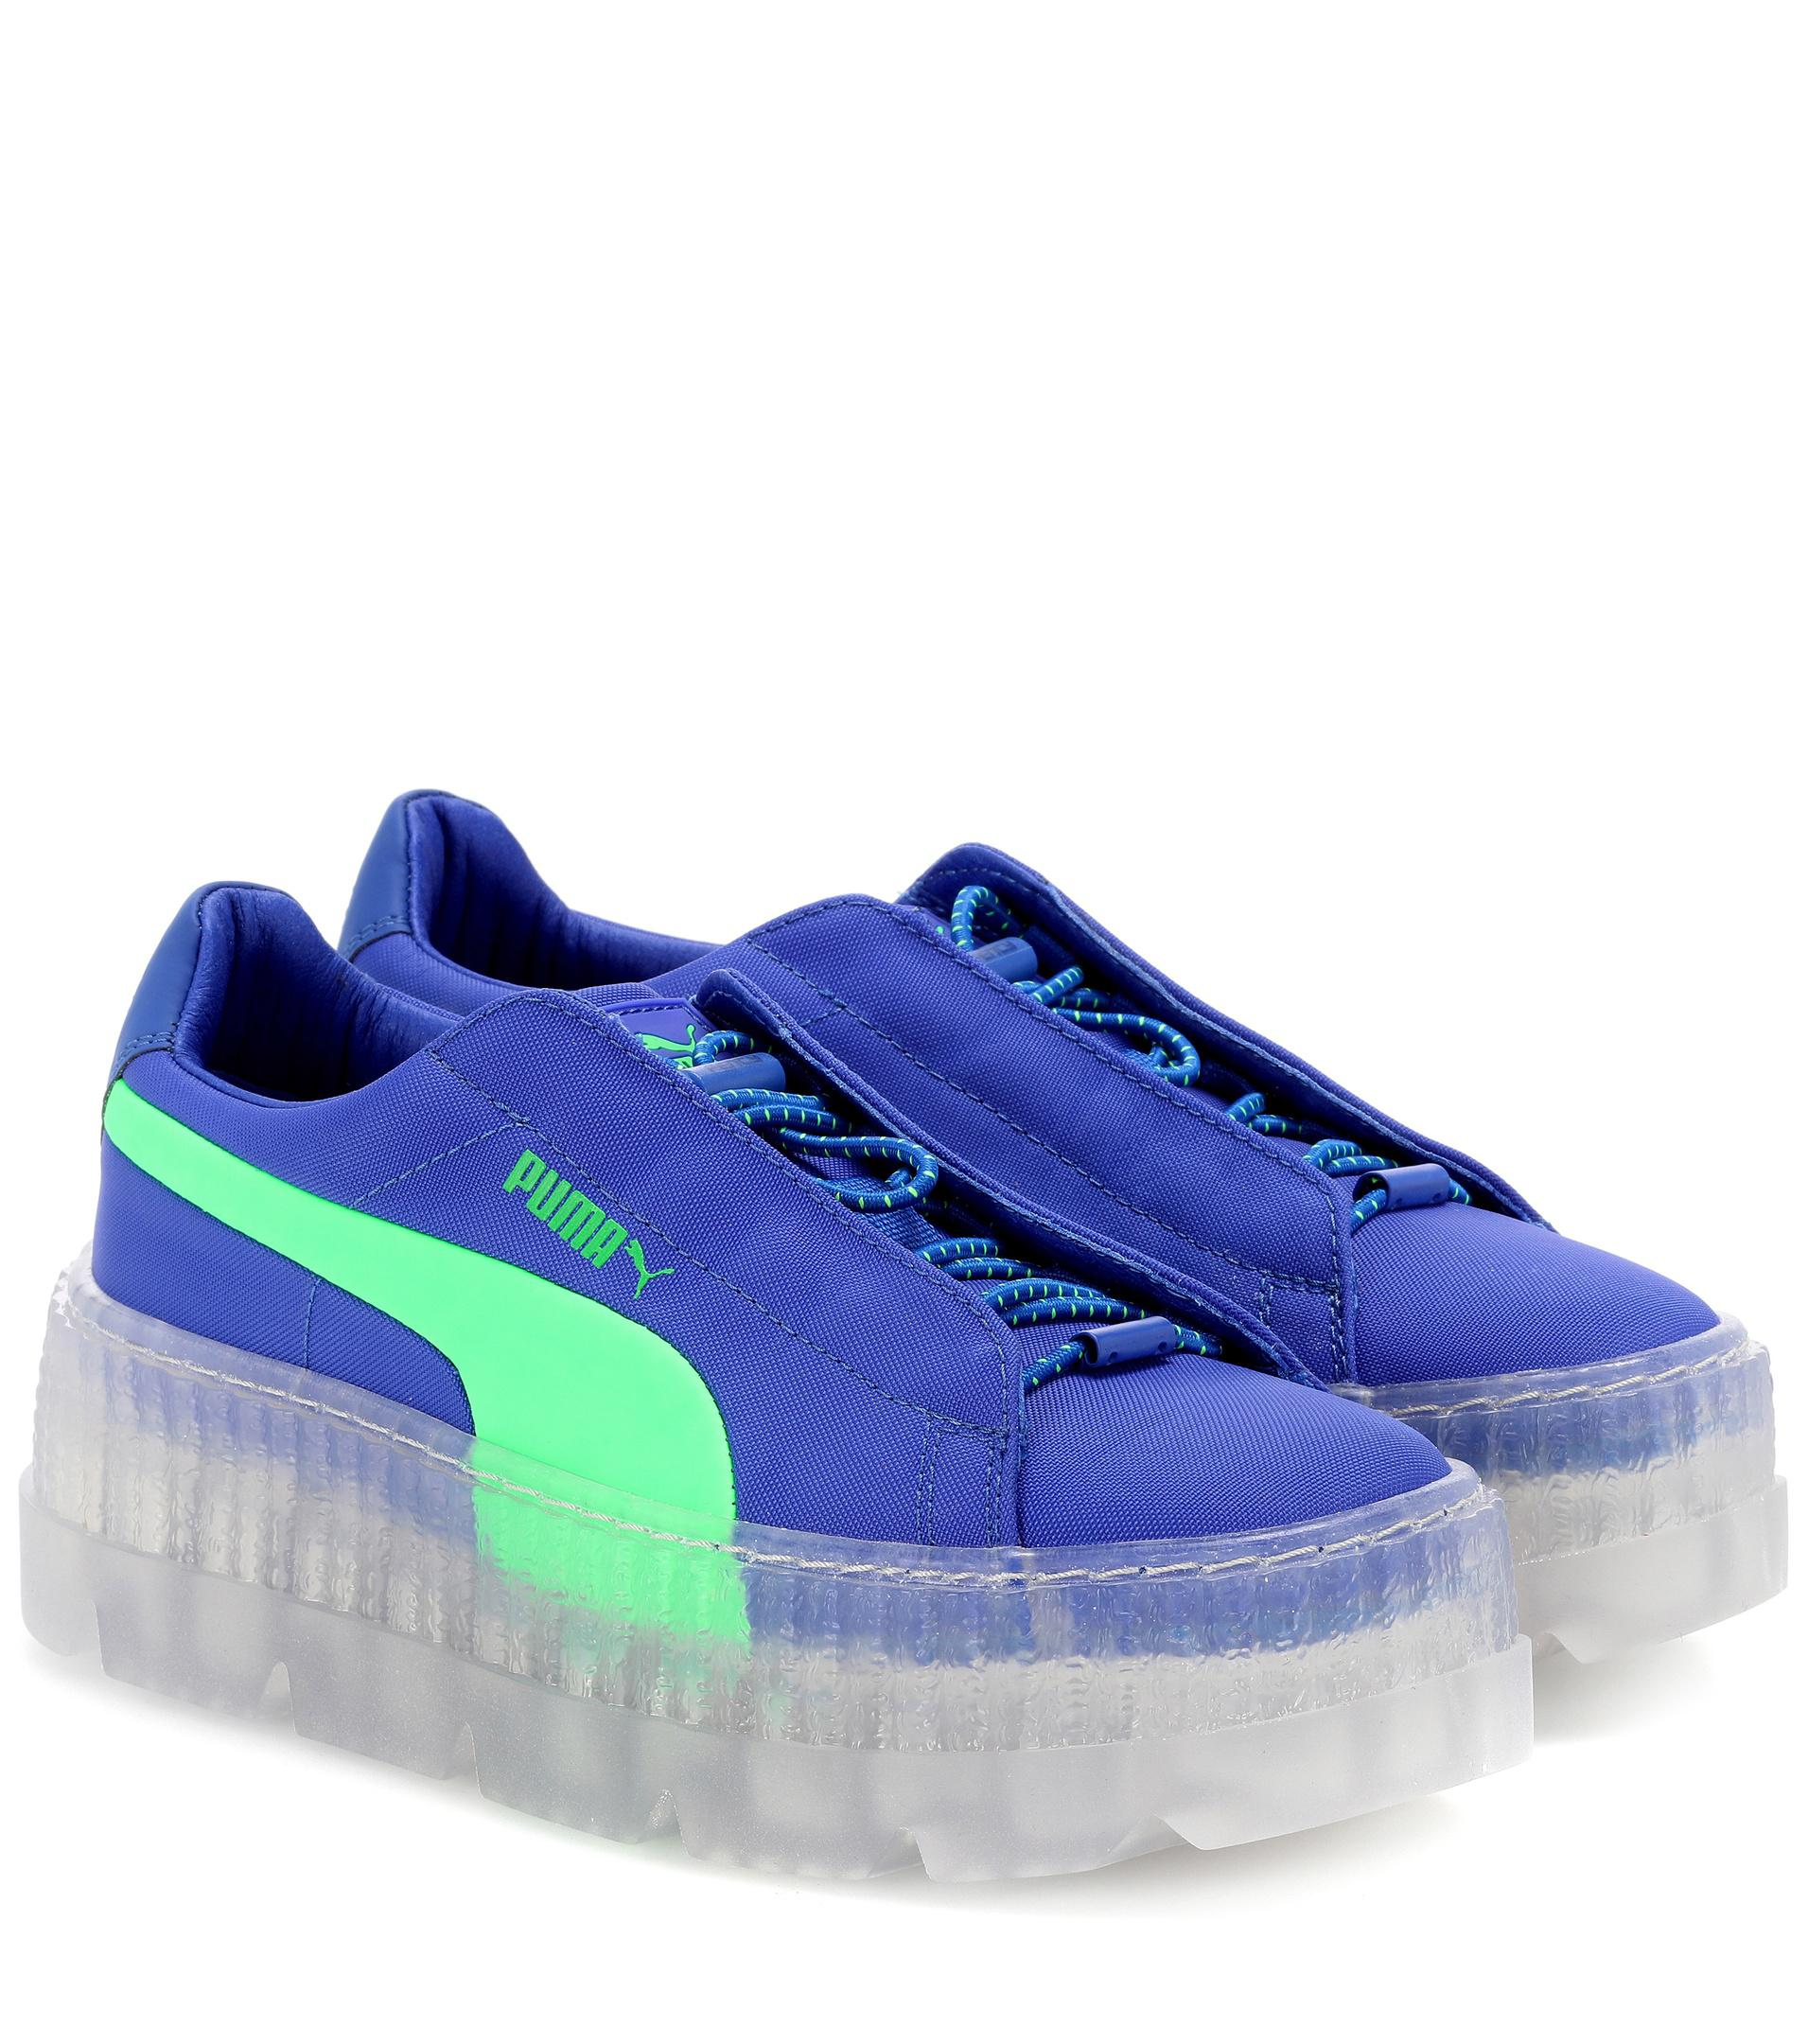 outlet store b01a1 df4f2 Women's Blue Clear Creeper Sneakers